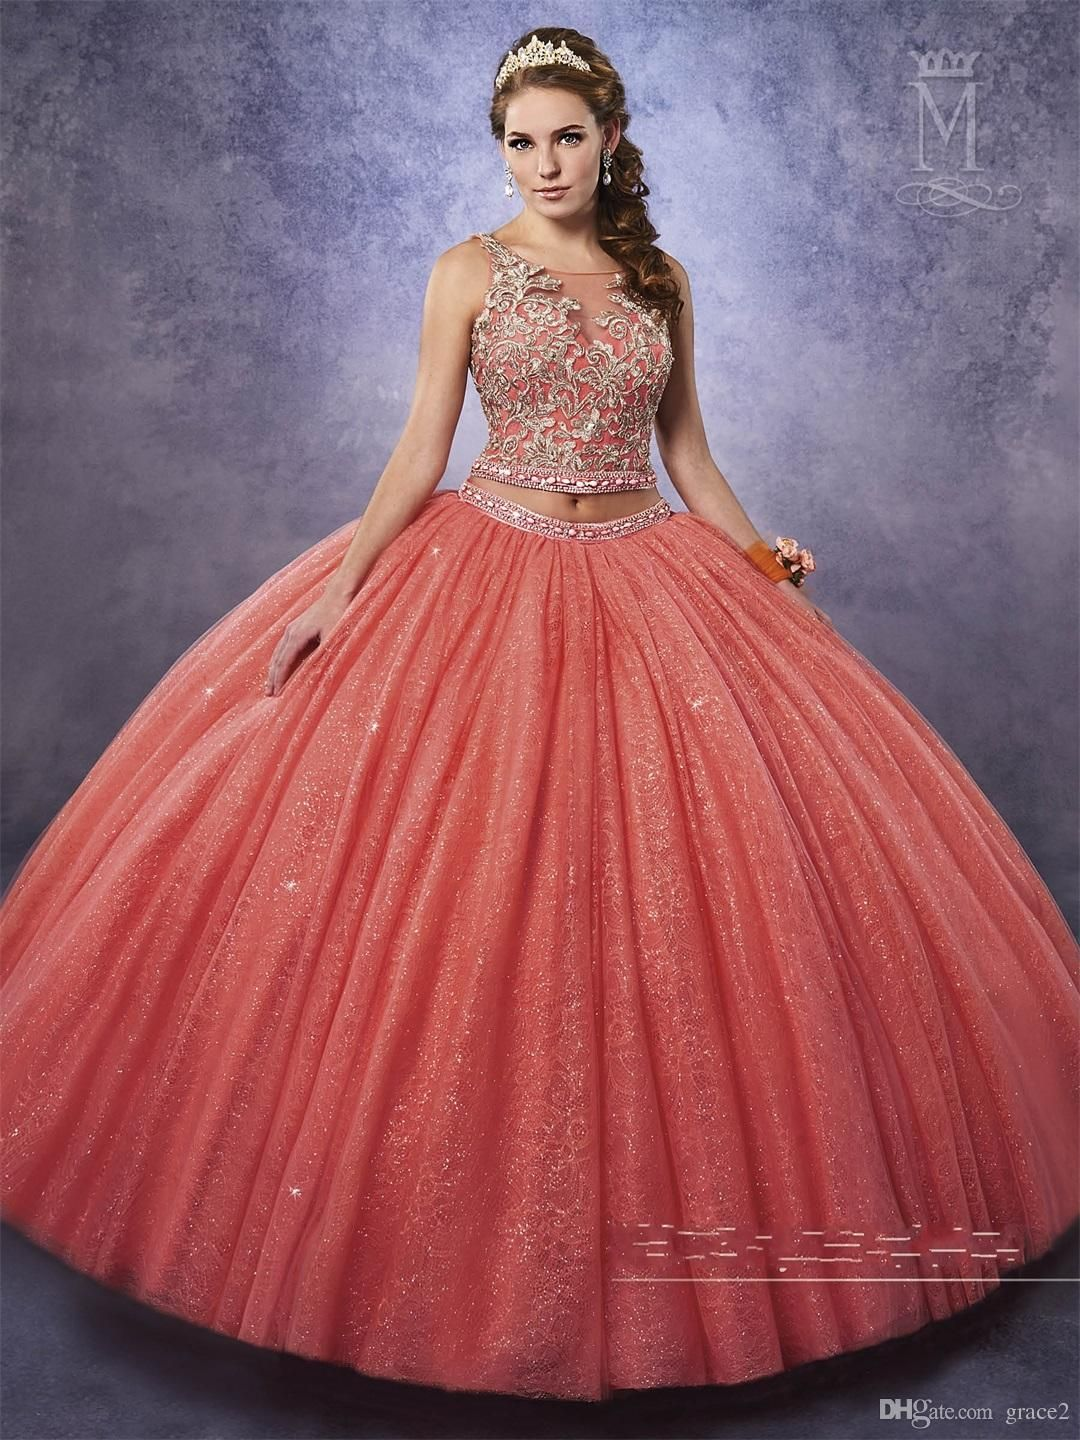 c962839d9 Quinceanera Dresses 2017 New with Free Bolero And Sexy Back Sparking Tulle  Ball-Gown Sweet 15 Dress Coral Vestidos De 15 Anos Vestidos De 15 Anos ...